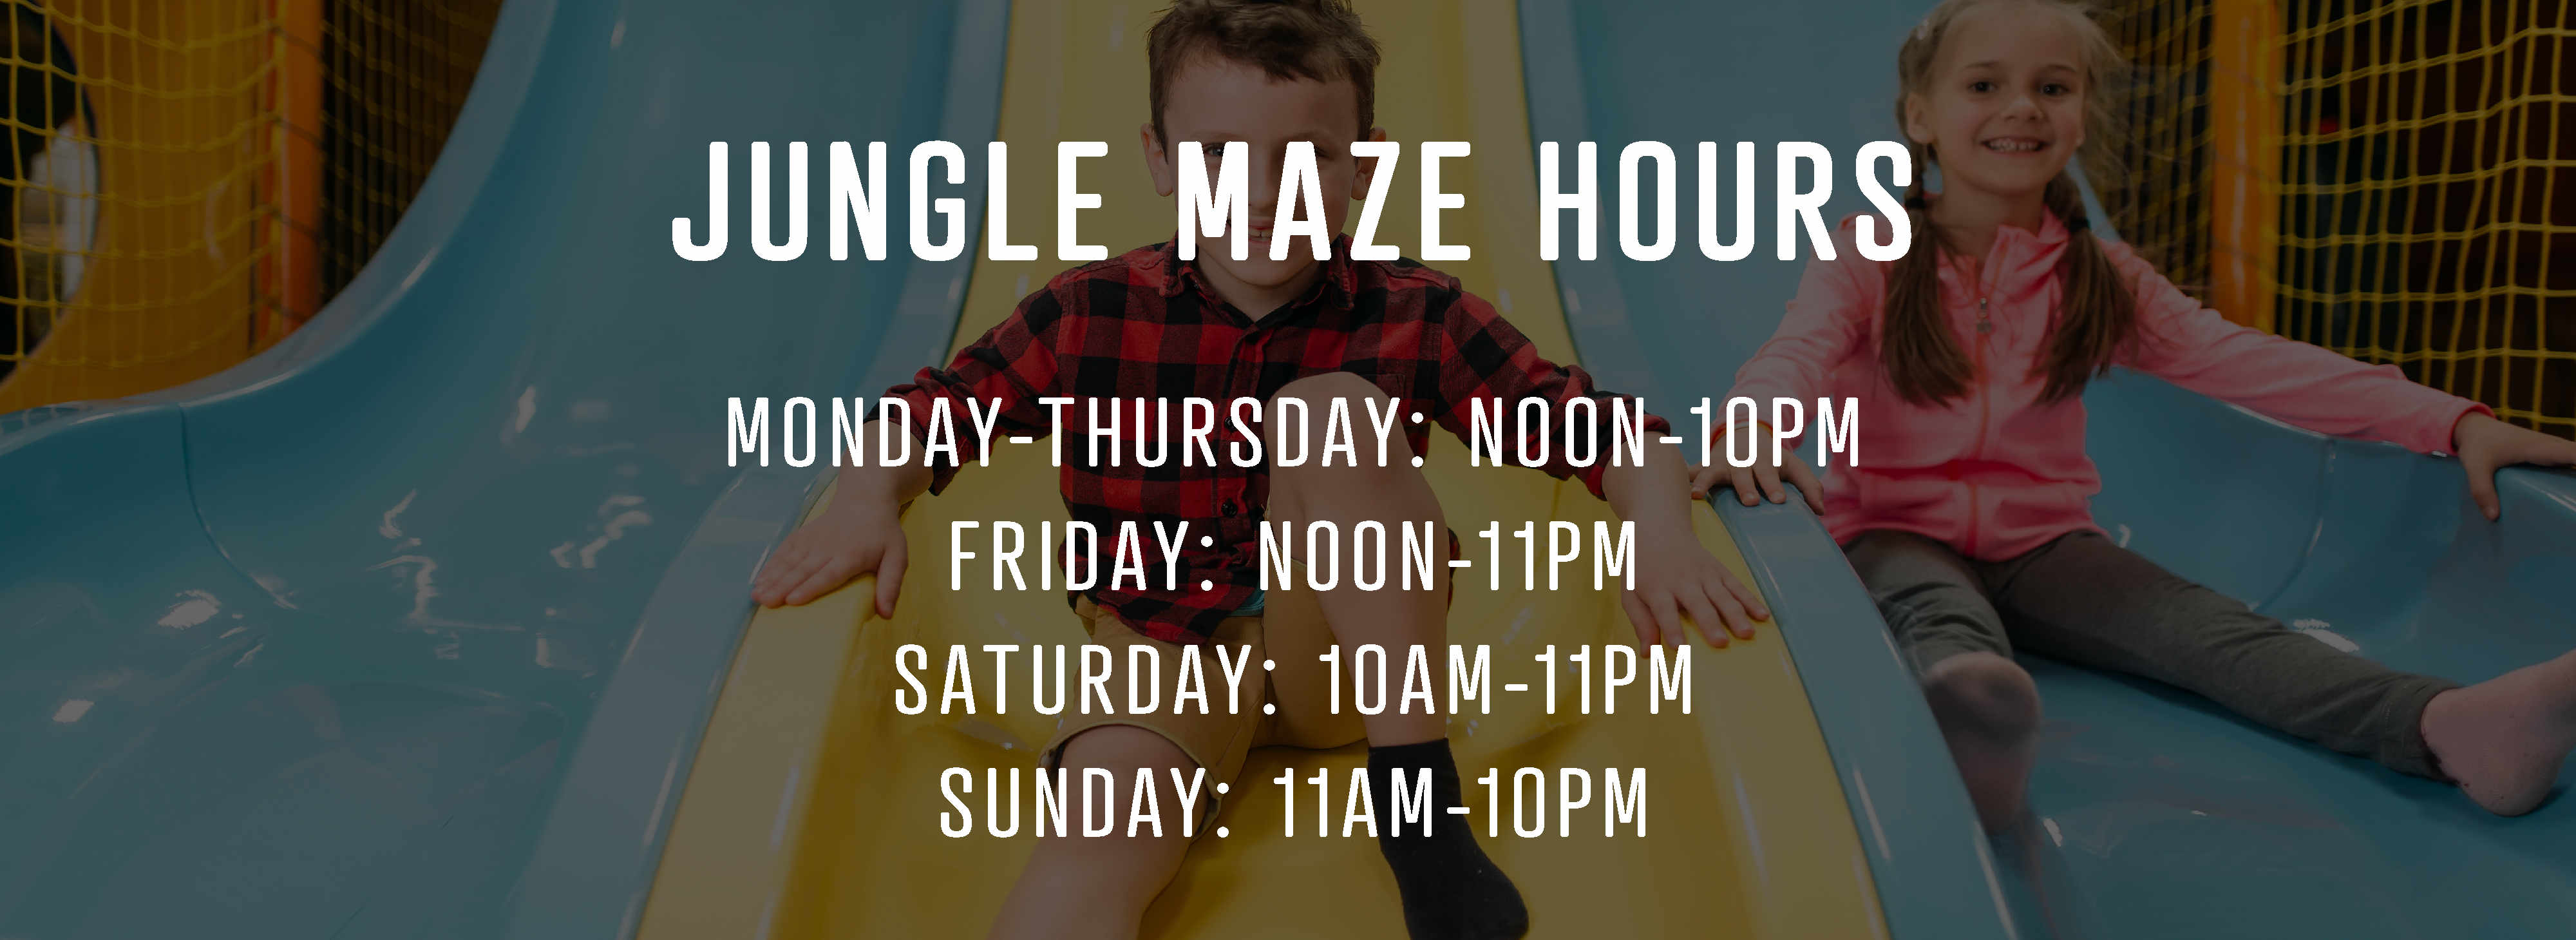 Jungle maze play structure hours of operation